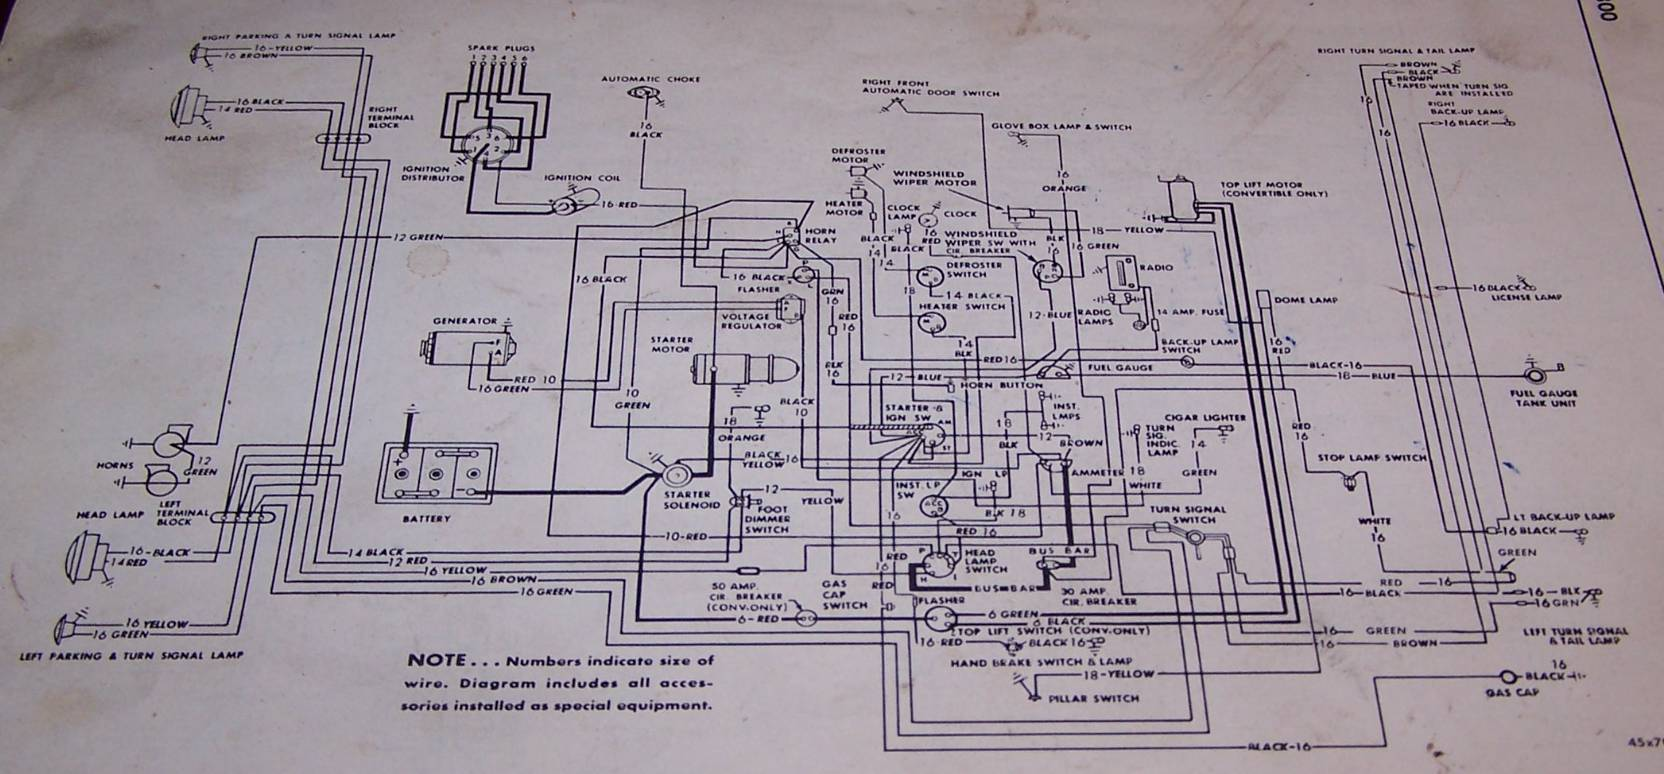 hight resolution of 1948 dodge wiring diagram wiring diagram pass 1948 dodge wiring diagram 1948 dodge wiring diagram